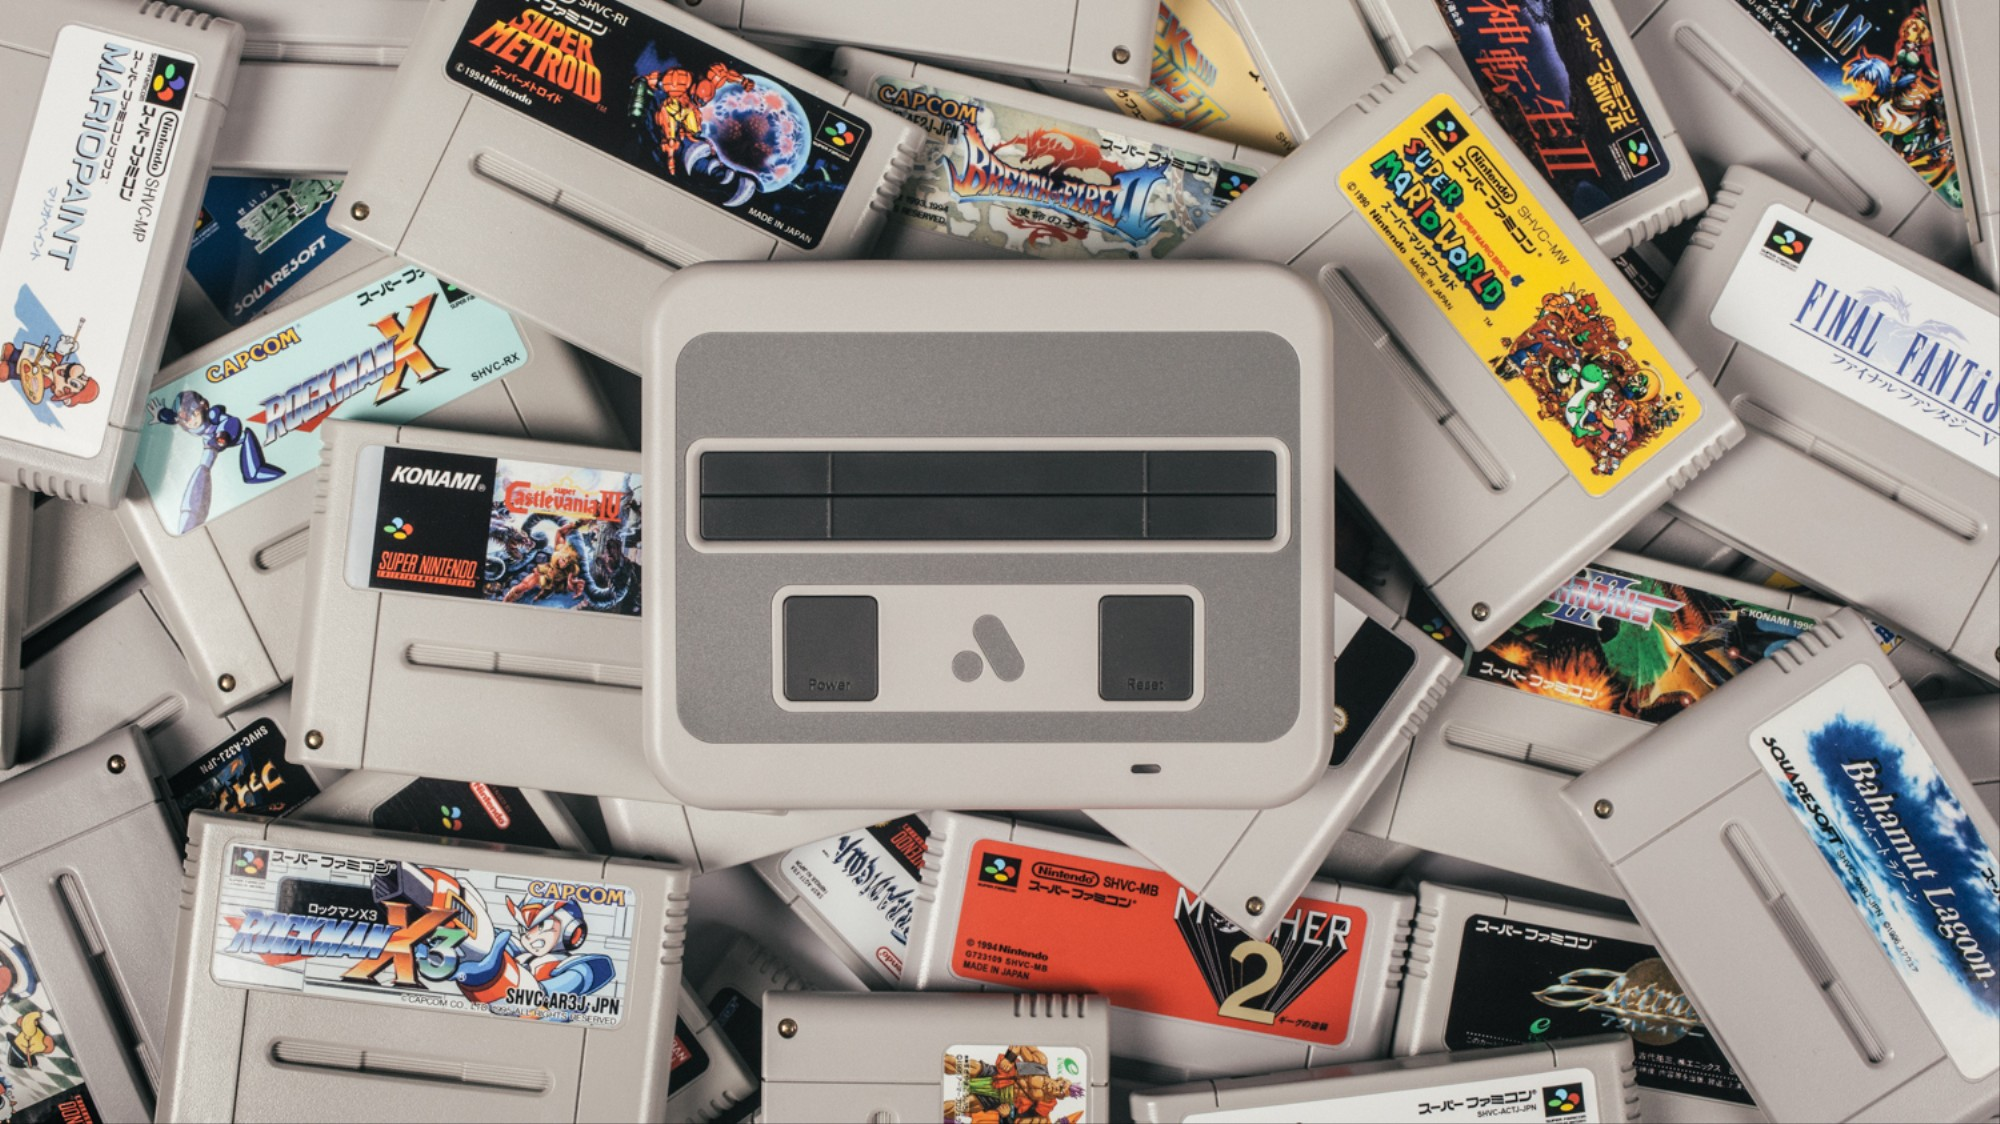 The Analogue Super NT Is the Best Way to Play Super Nintendo Games